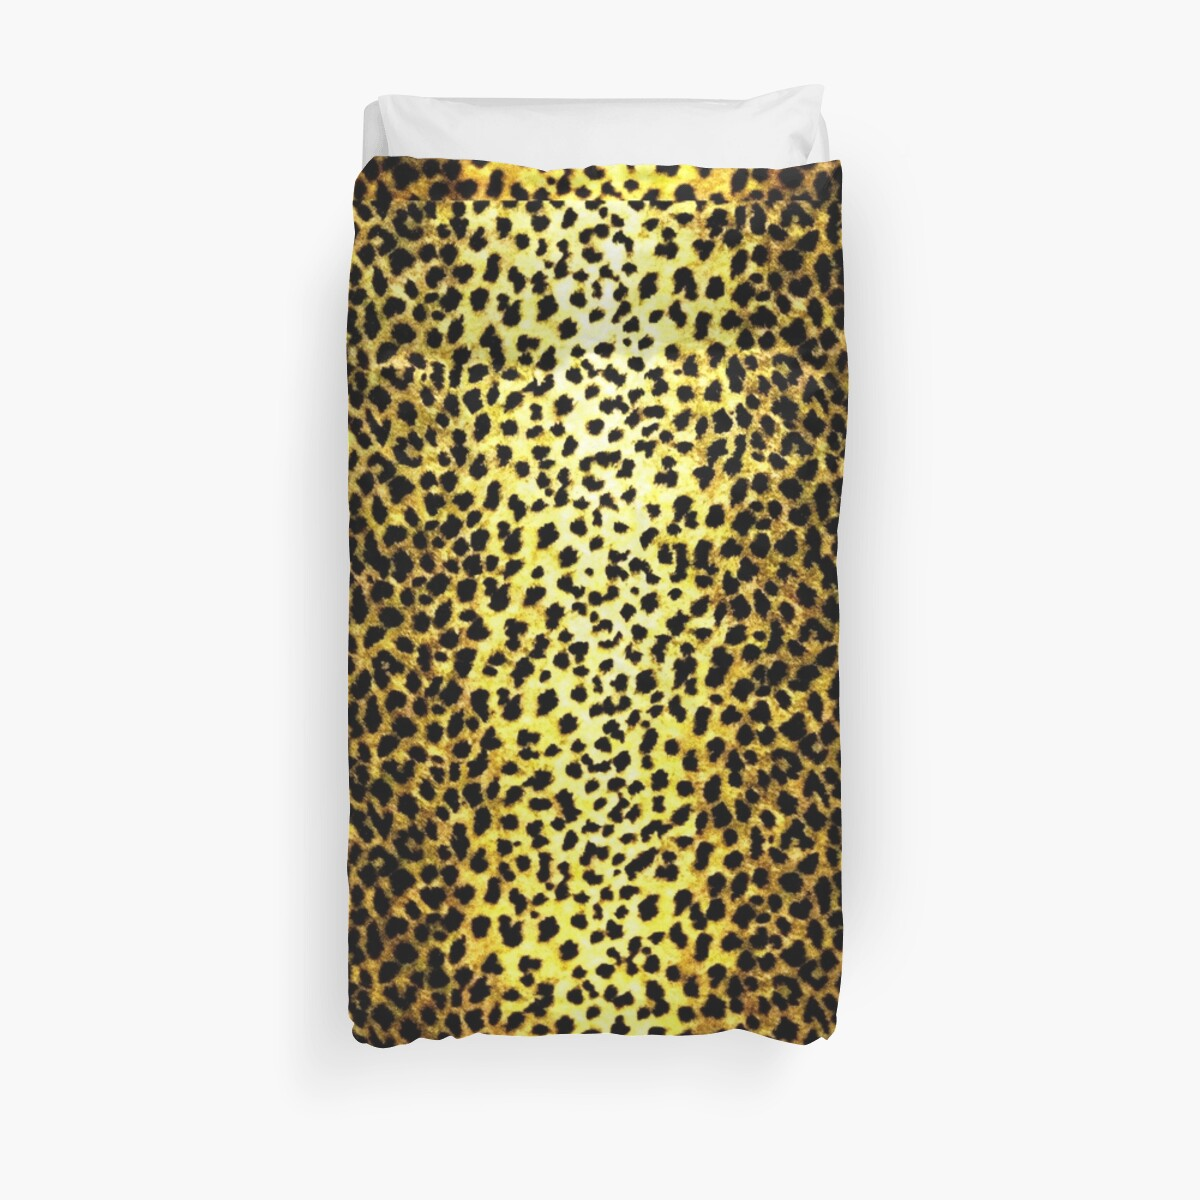 'Leopard Wallpaper Animal Print' Duvet Cover by yonni